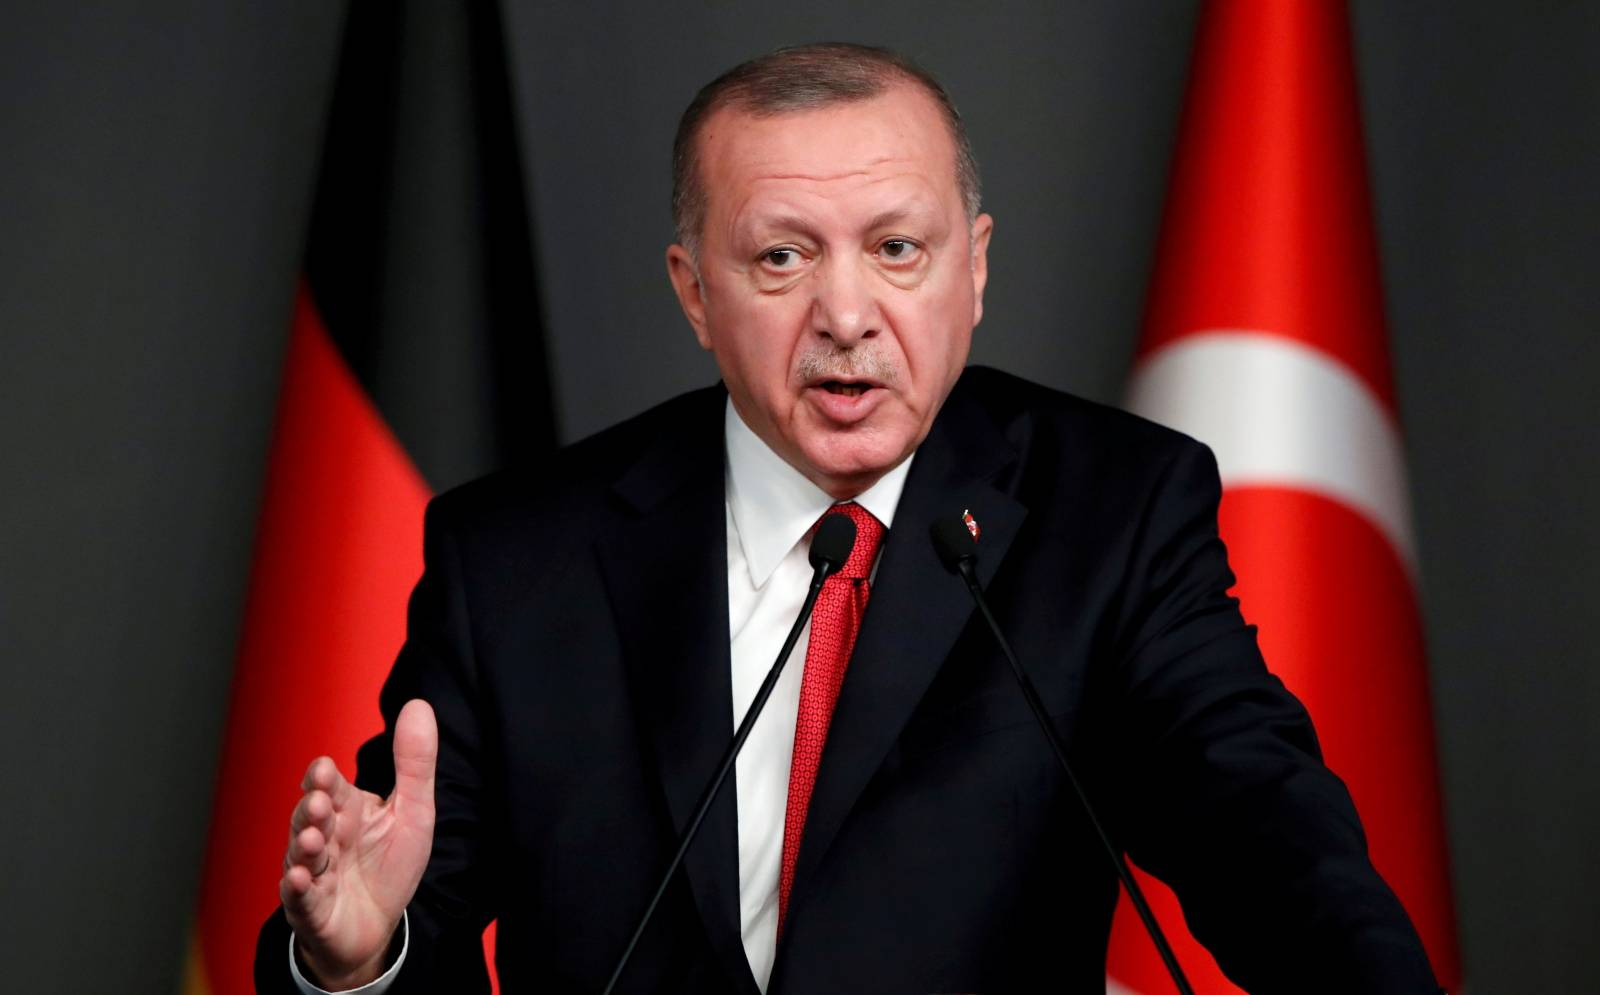 FILE PHOTO: Turkish President Tayyip Erdogan speaks during a news conference in Istanbul